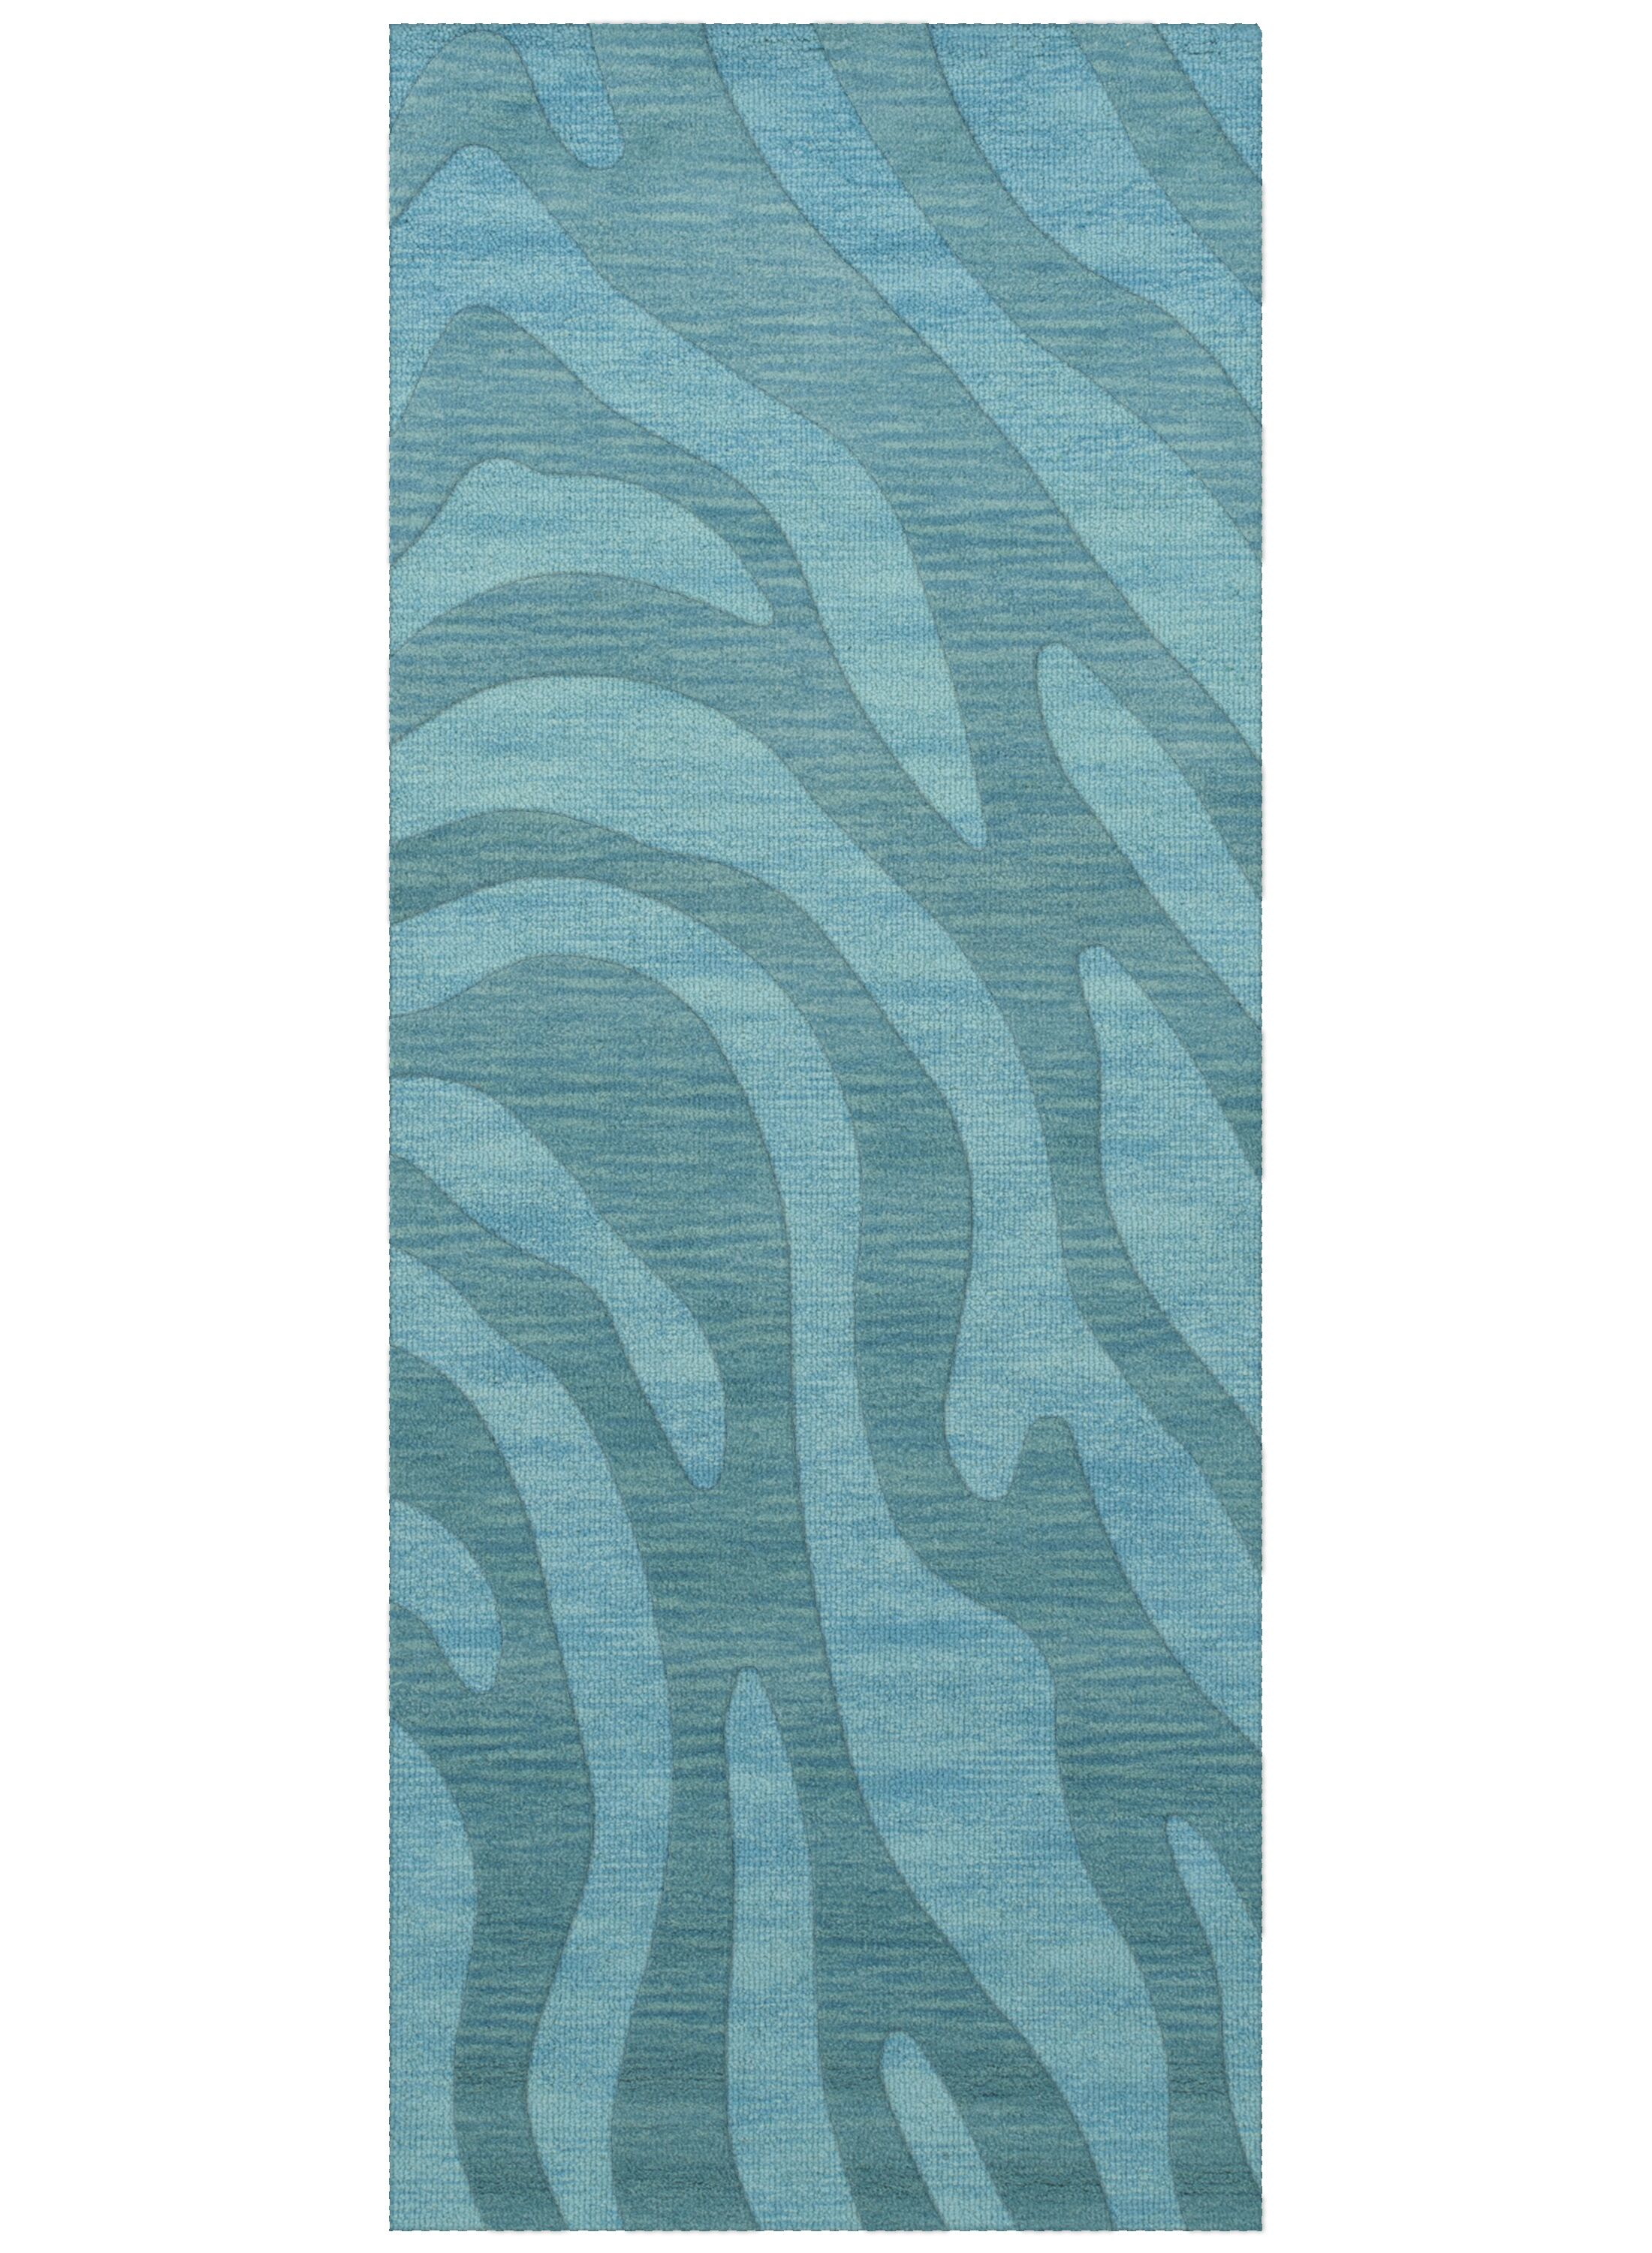 Dover Tufted Wool Peacock Area Rug Rug Size: Runner 2'6